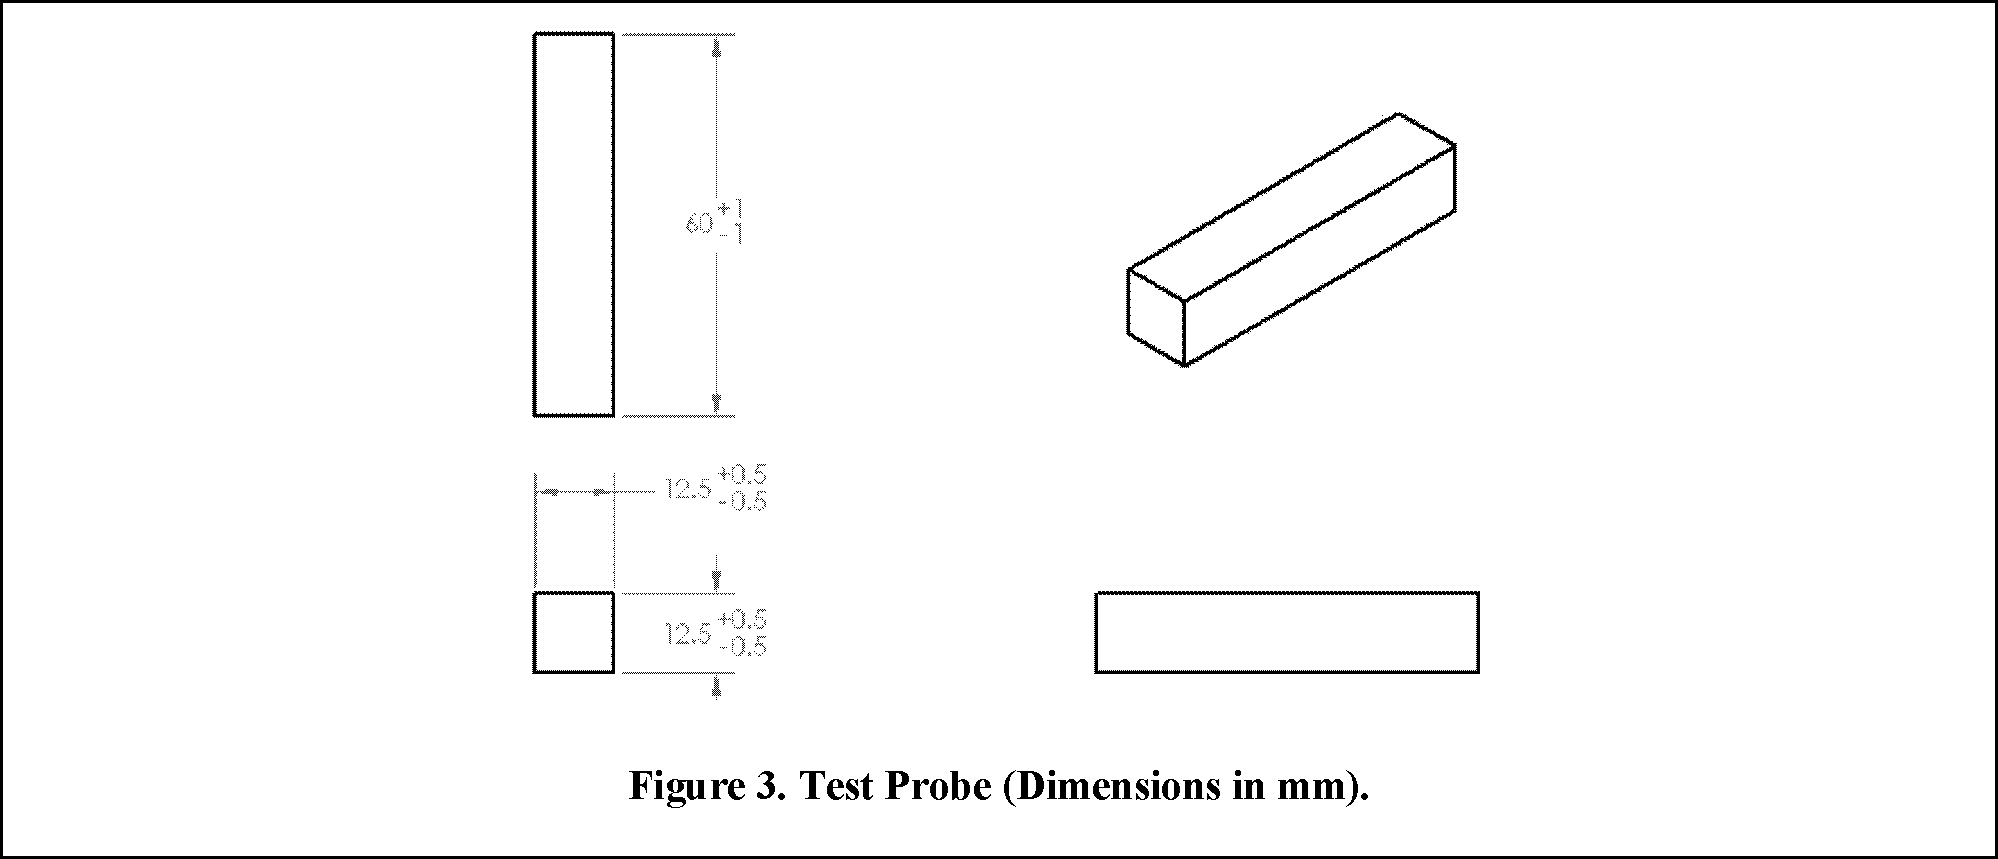 hight resolution of  triggering purposes staff used a test probe that represents the conductive layer of human flesh once the epidermis has been cut by a table saw blade